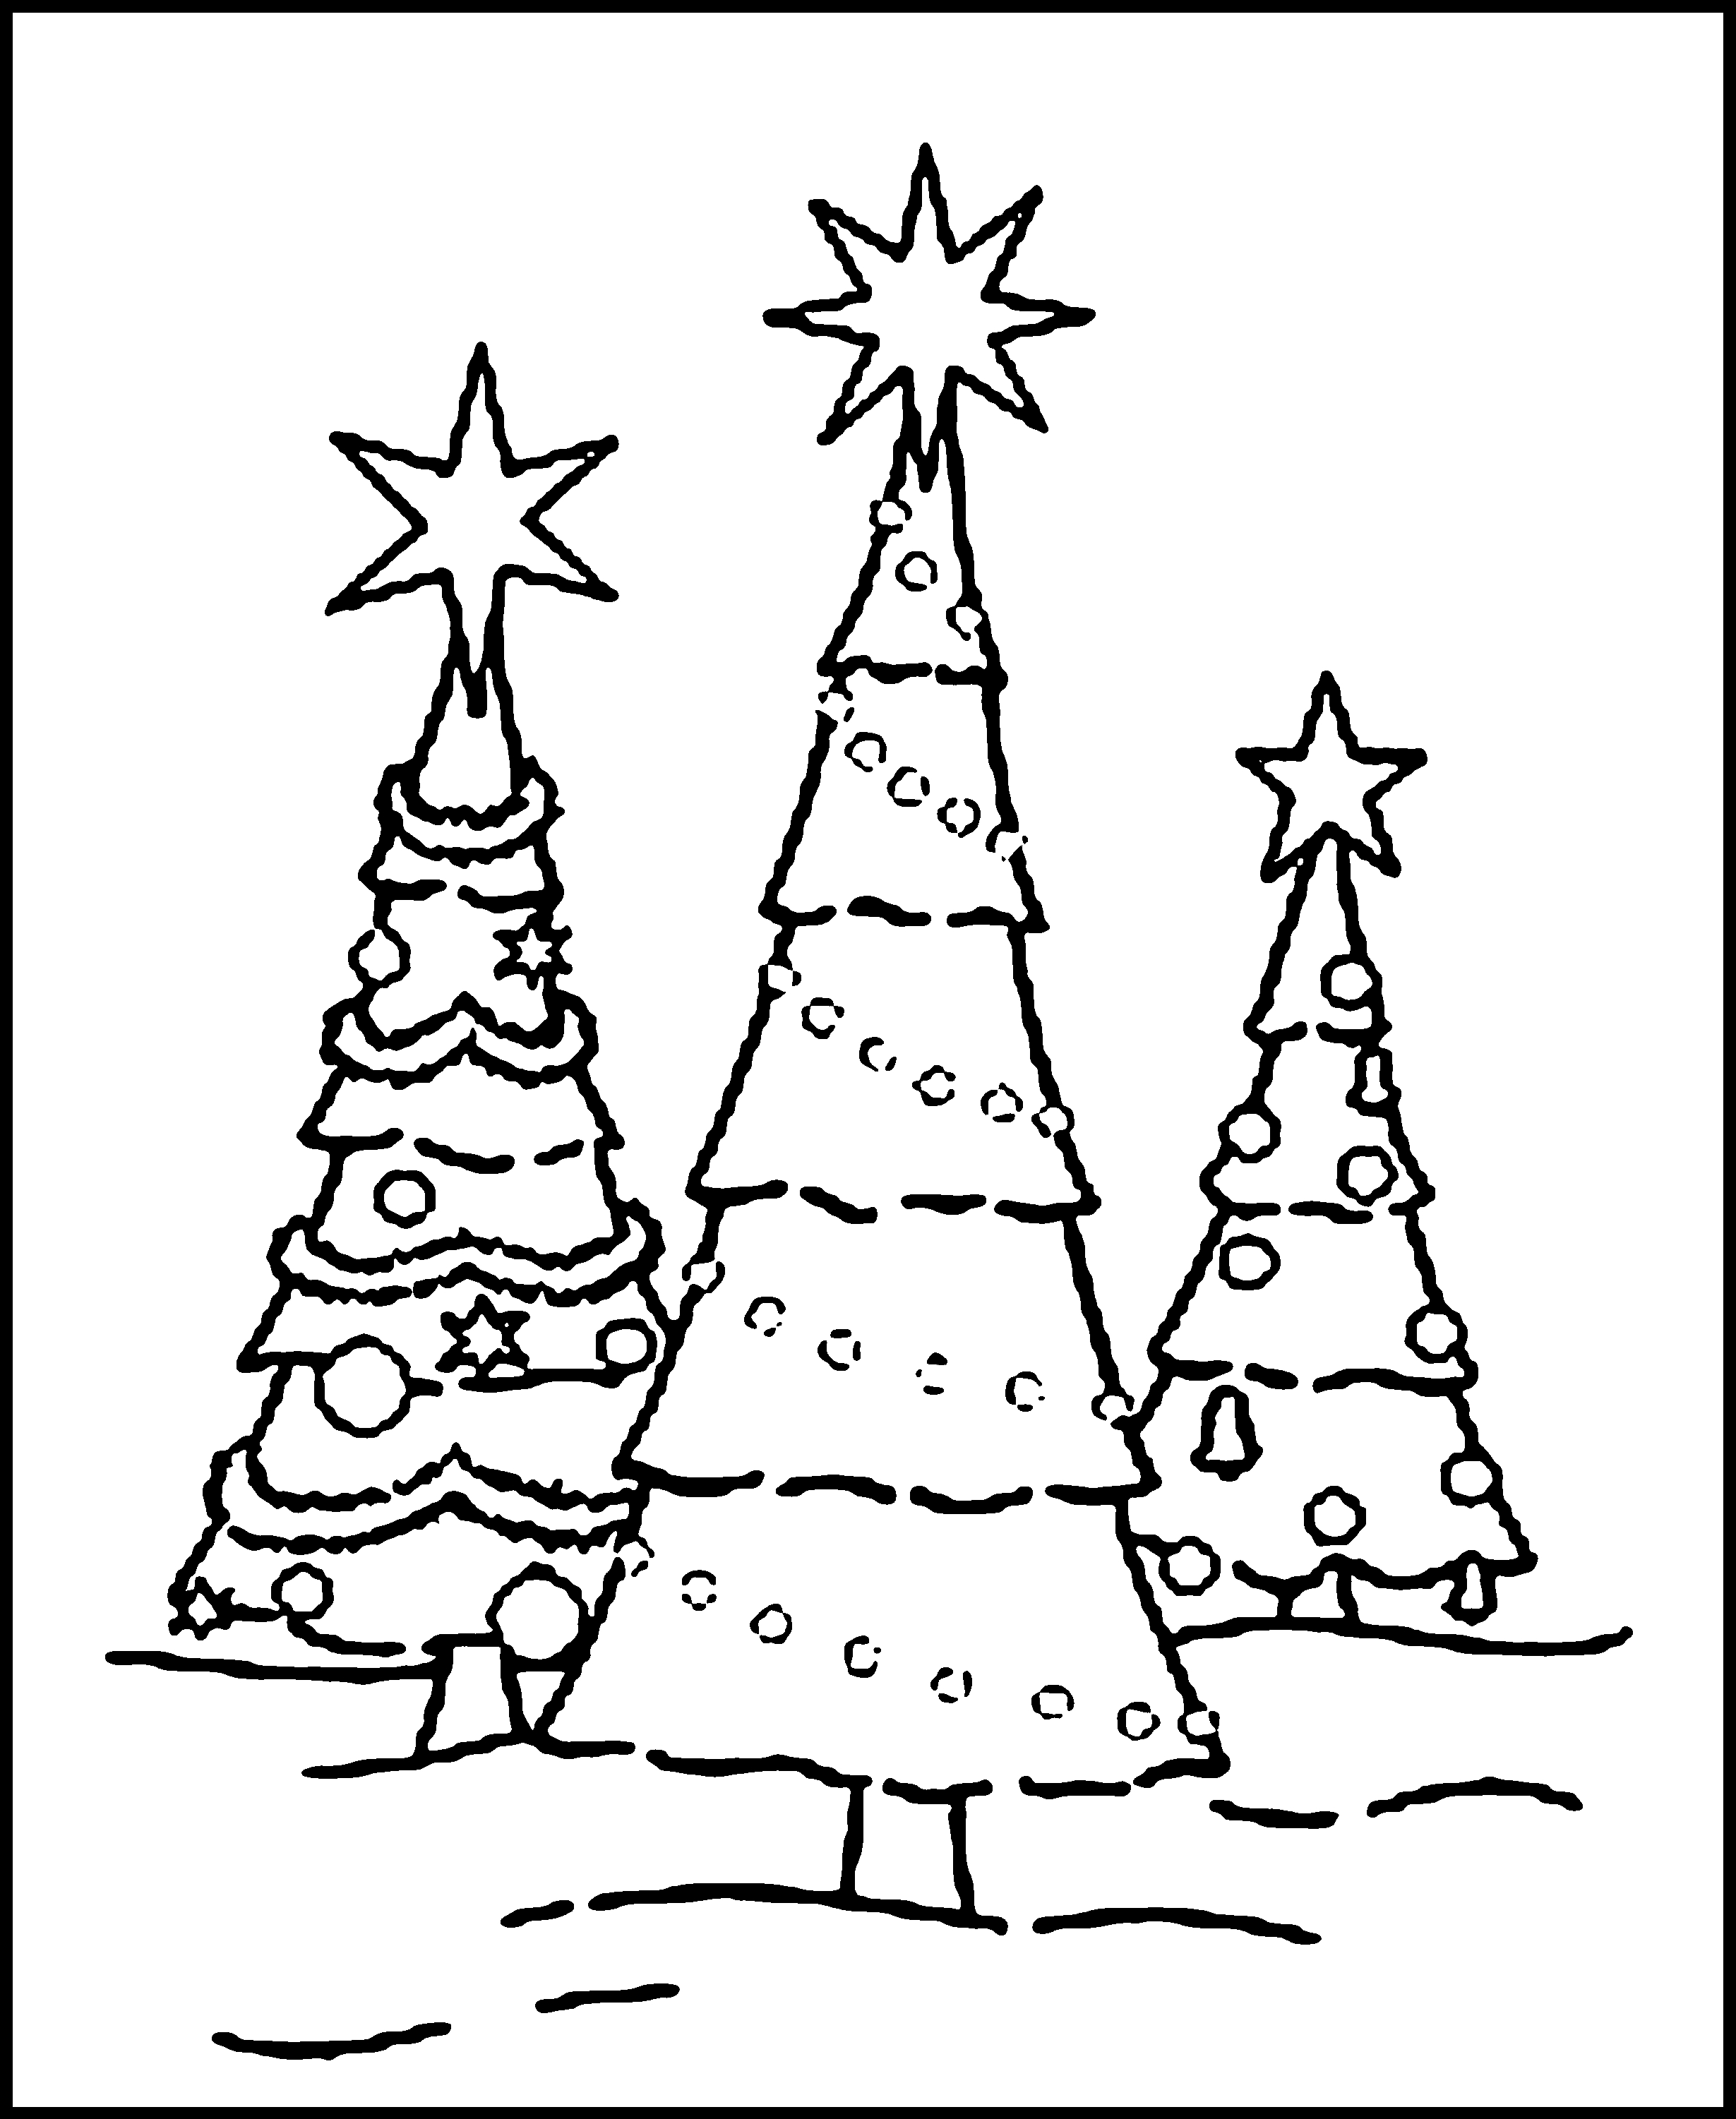 Free Printable Christmas Tree Coloring Pages For Kids - Free Printable Christmas Tree Ornaments Coloring Pages